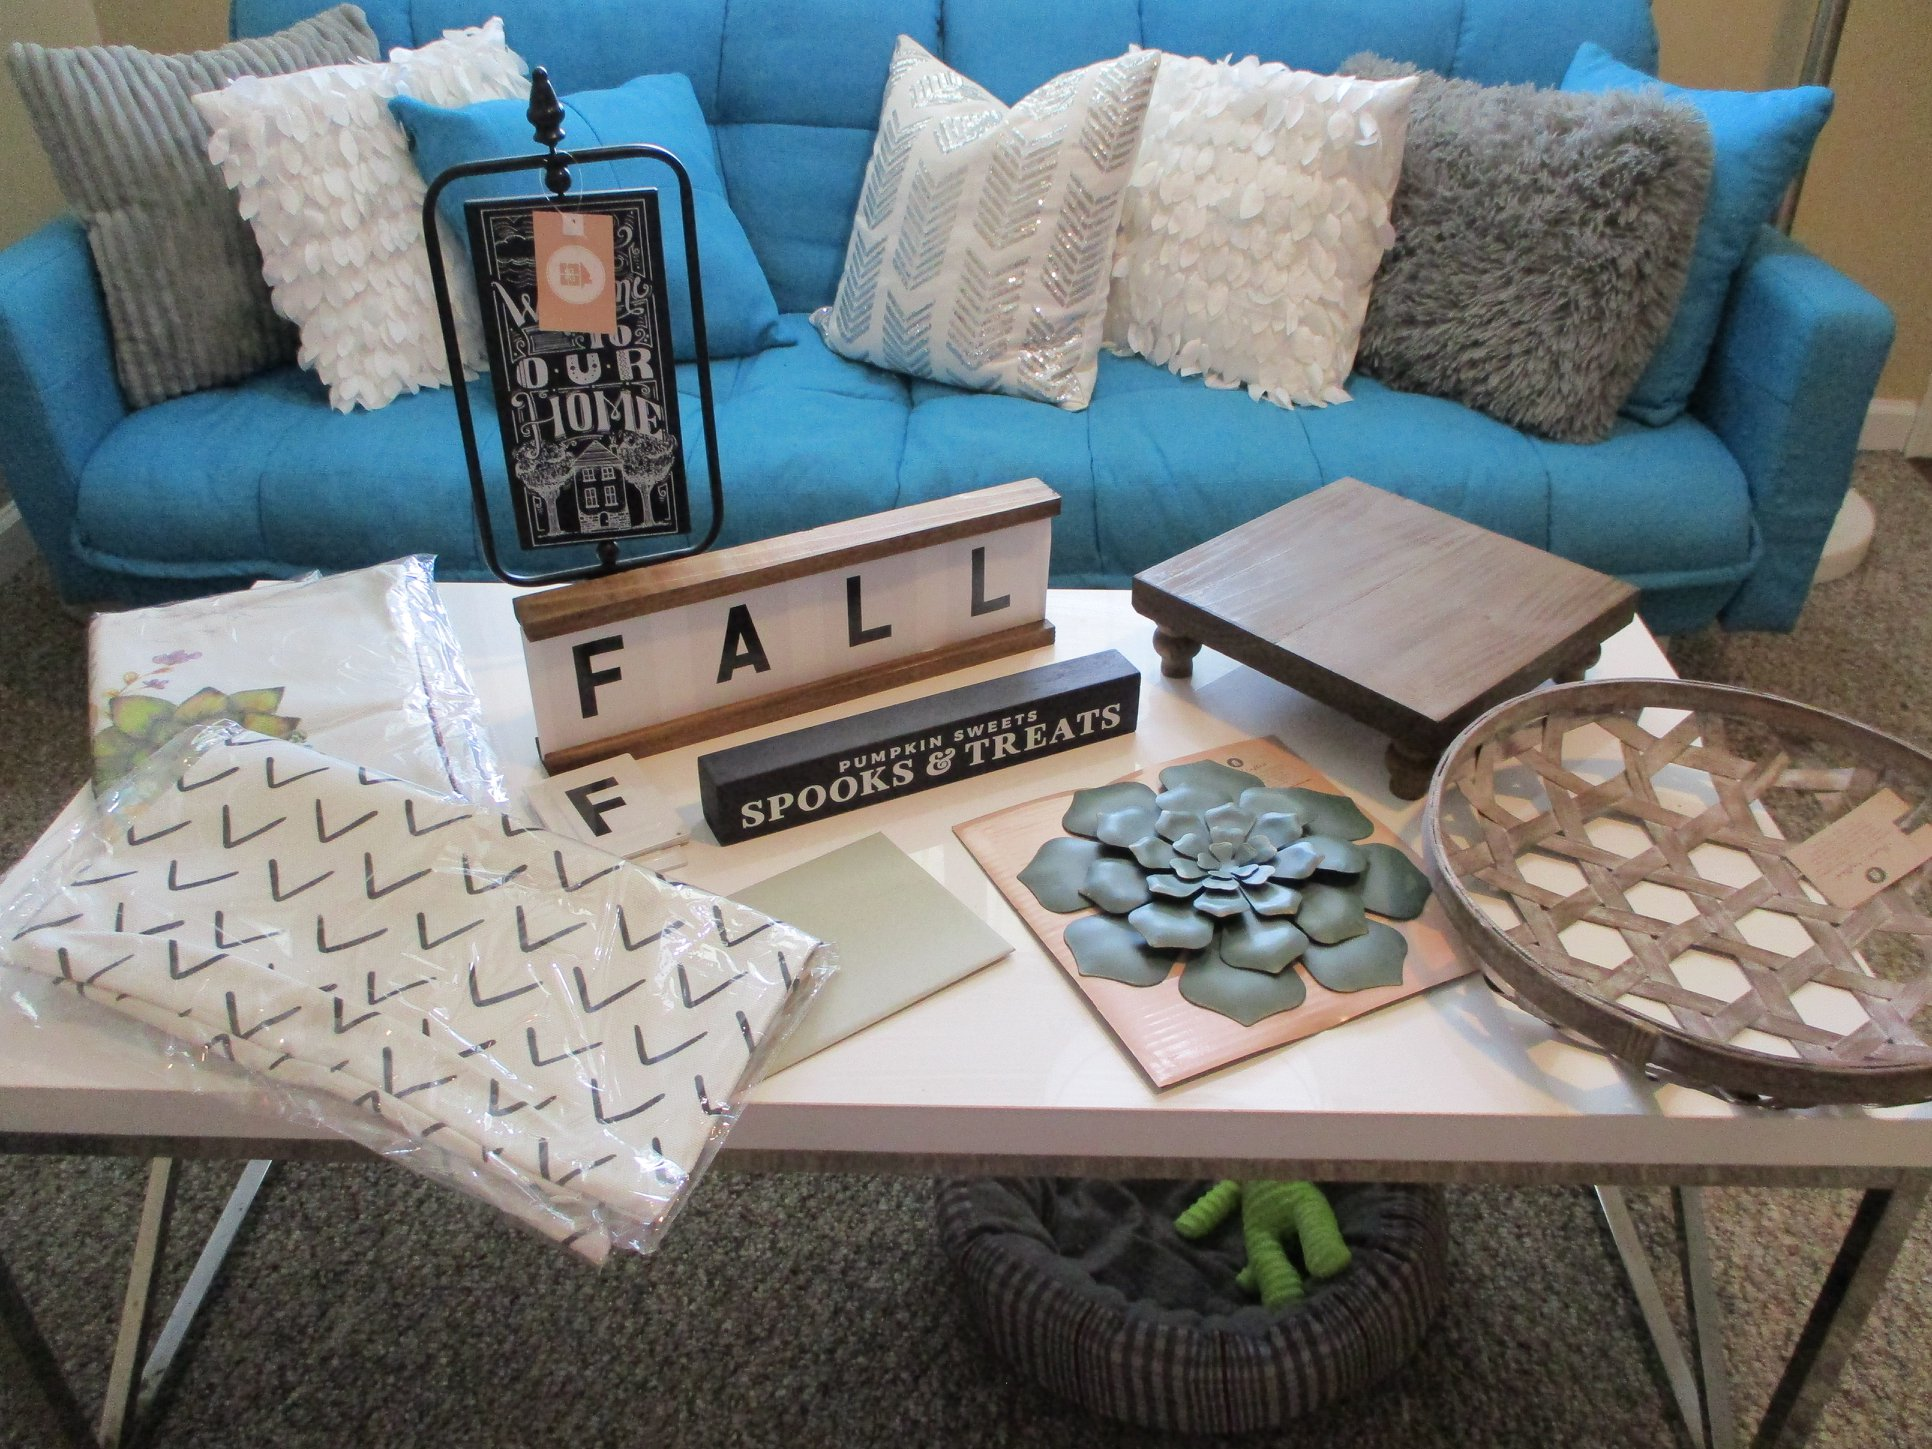 Decocrated's FALL Home Decor Subscription Box